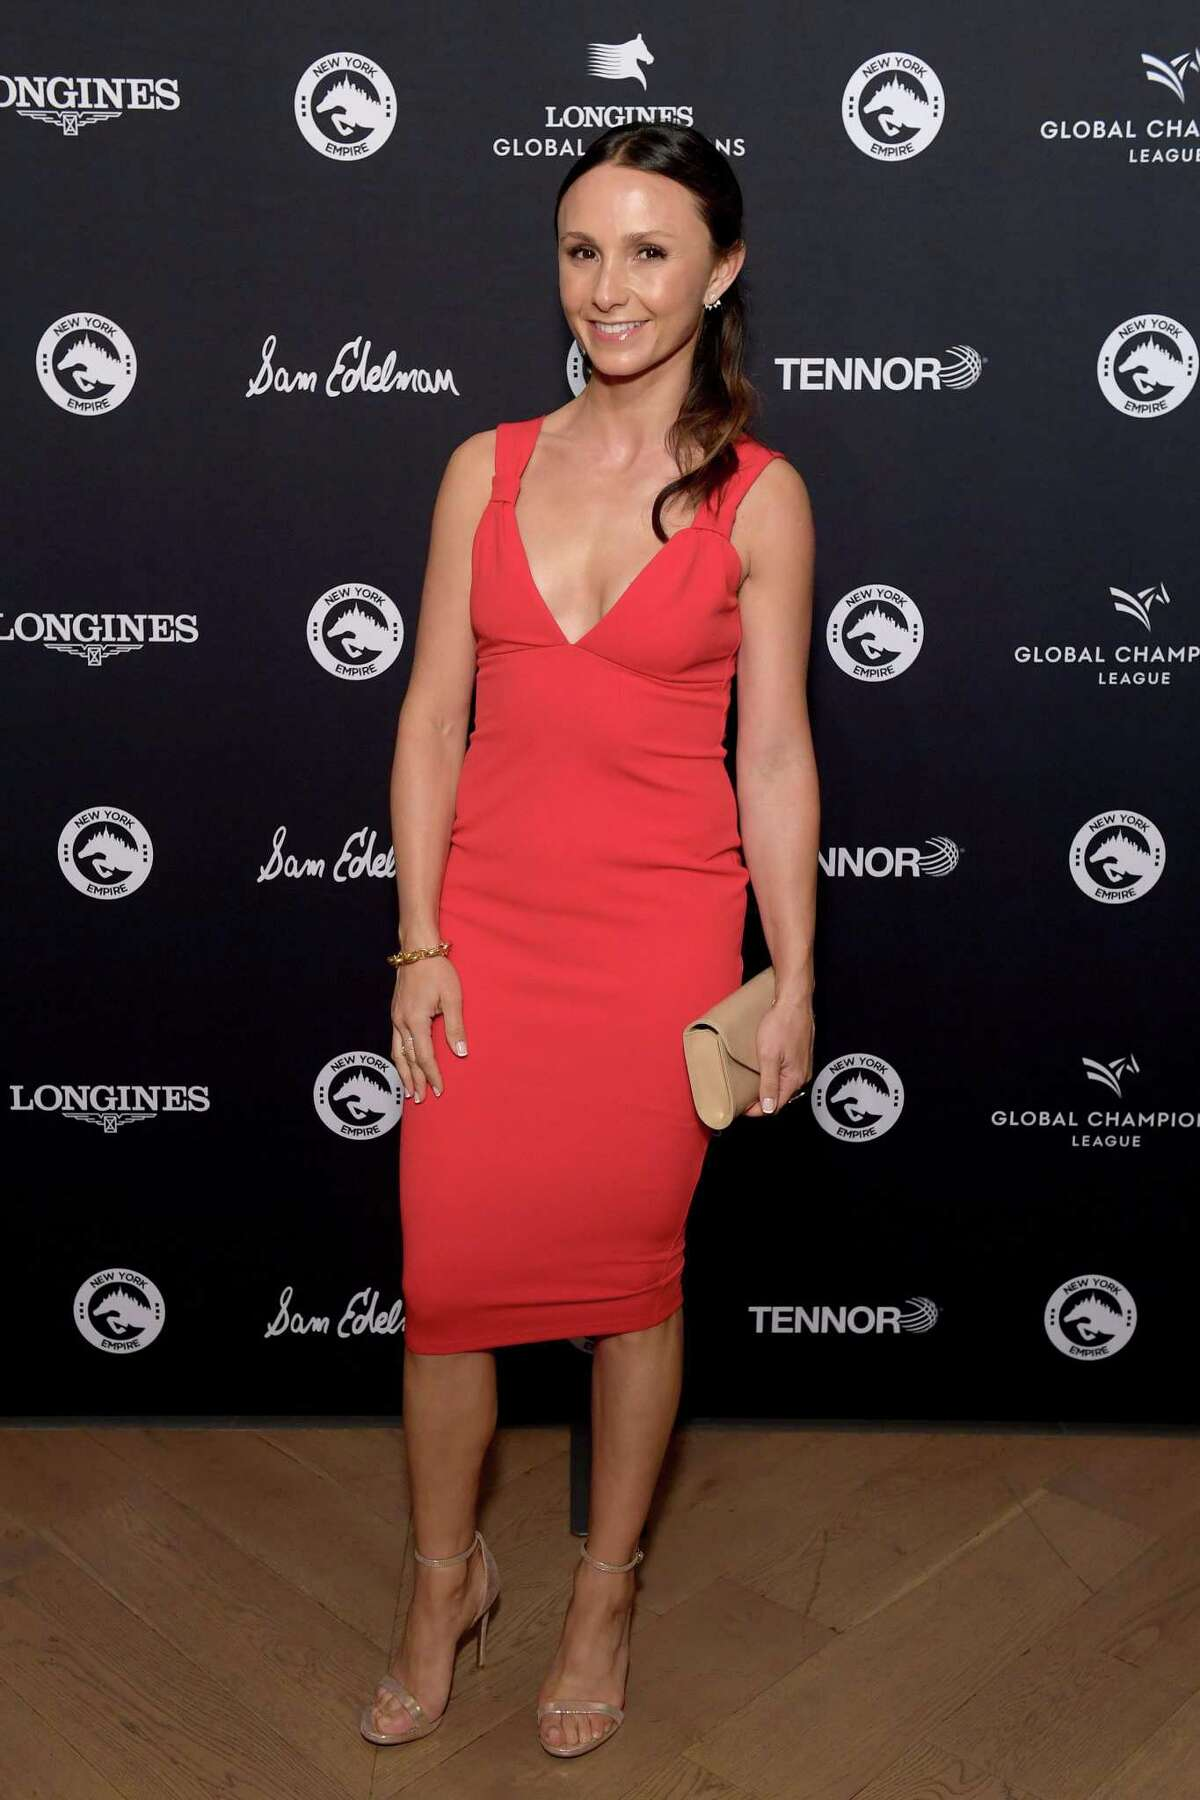 NEW YORK, NEW YORK - SEPT. 28: Georgina Bloomberg attends the Celebration of The Inaugural Longines Global Champions Tour Of New York with Georgina Bloomberg And The New York Empire GCL Team at Manhattan on Sept. 28, 2019 in New York City. Bloomberg will also be participating in a live question and answer interview series at the New Canaan Mounted Troop this Tuesday, Oct. 8, 2019 in New Canaan, Connecticut. (Photo by Ben Gabbe/Getty Images for New York Empire GCL Team )